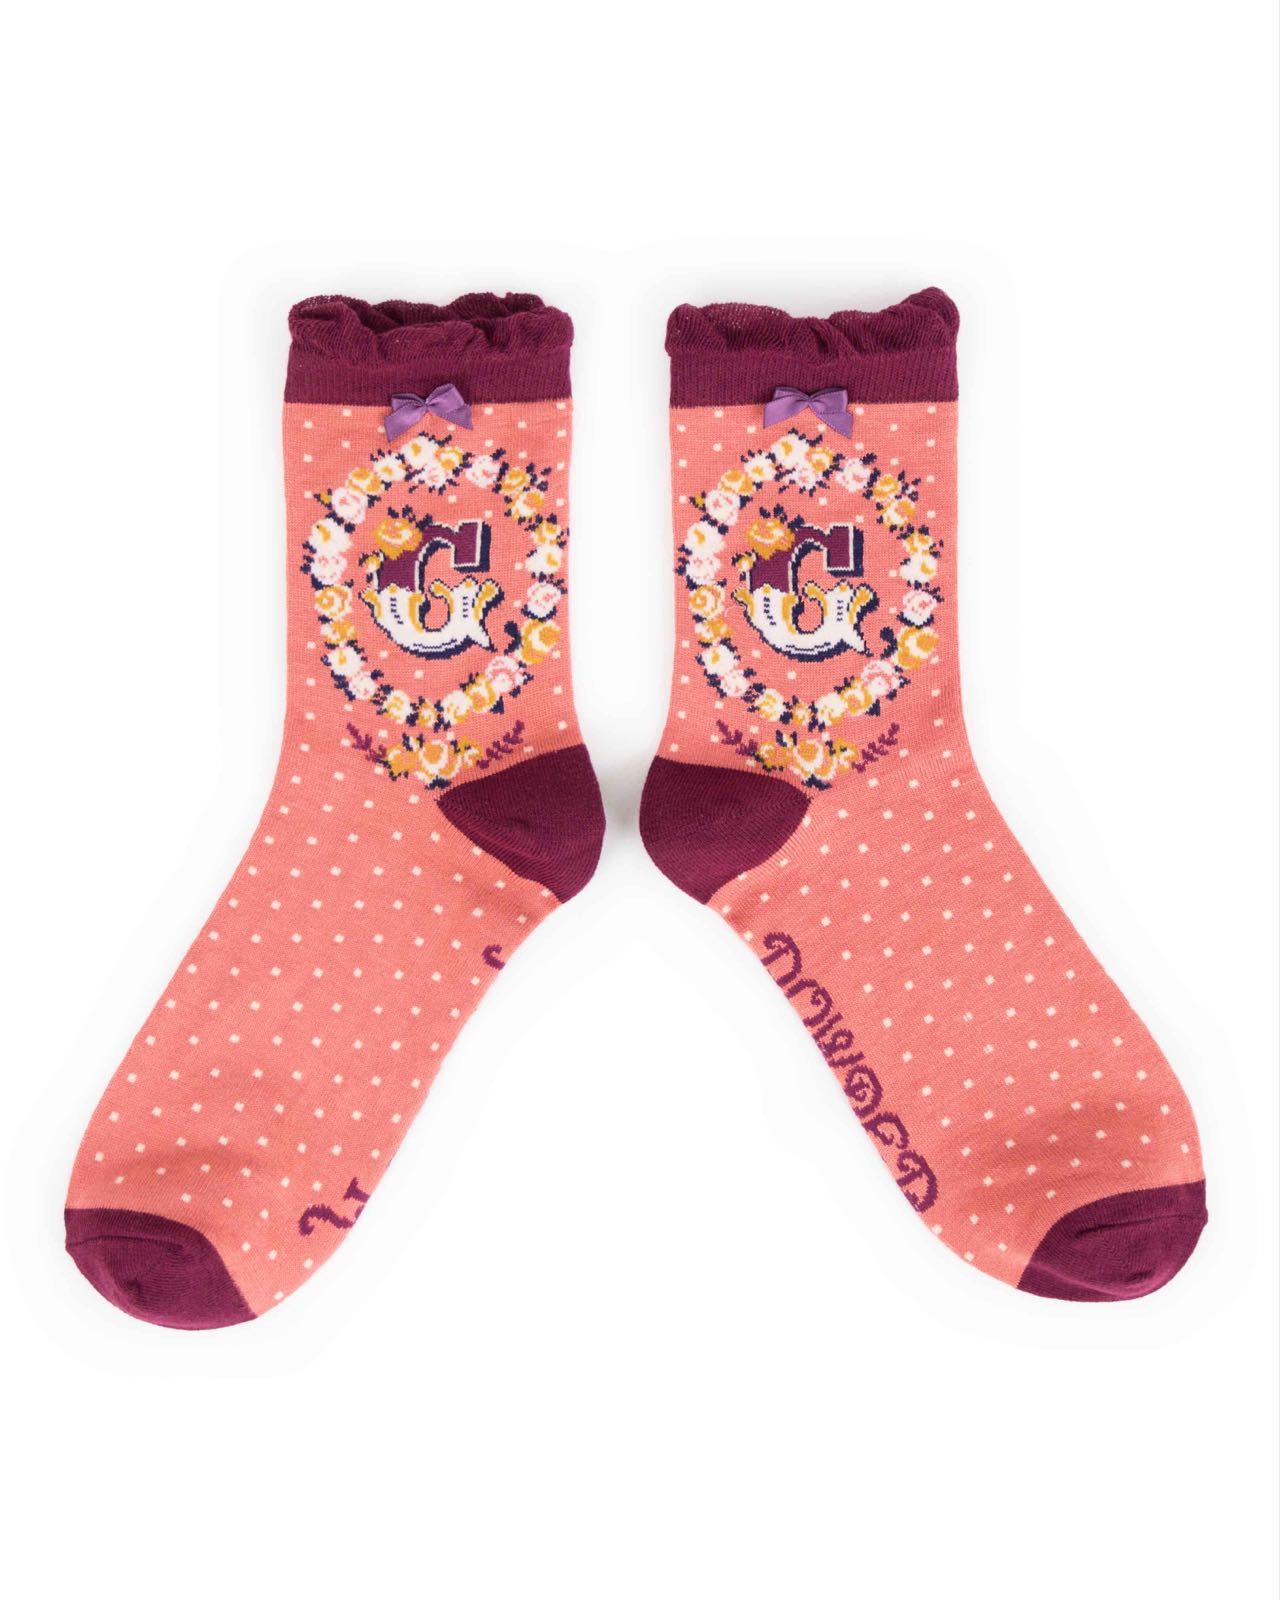 Powder Alphabet socks G (product may differ from item shown in the photo)